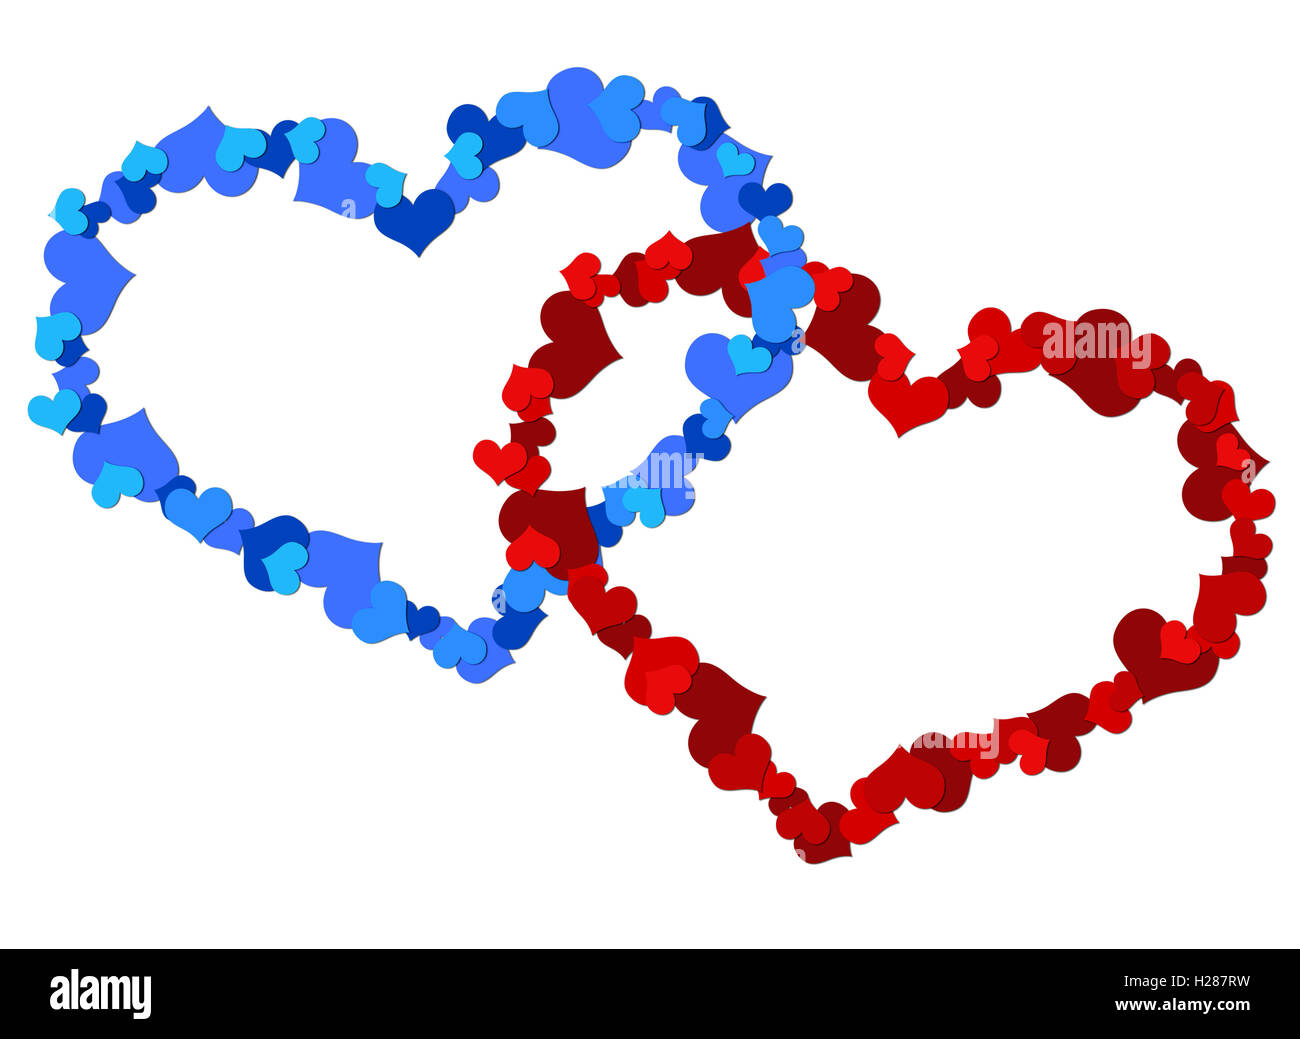 Two big heart made up of little hearts stock photo two big heart made up of little hearts buycottarizona Image collections